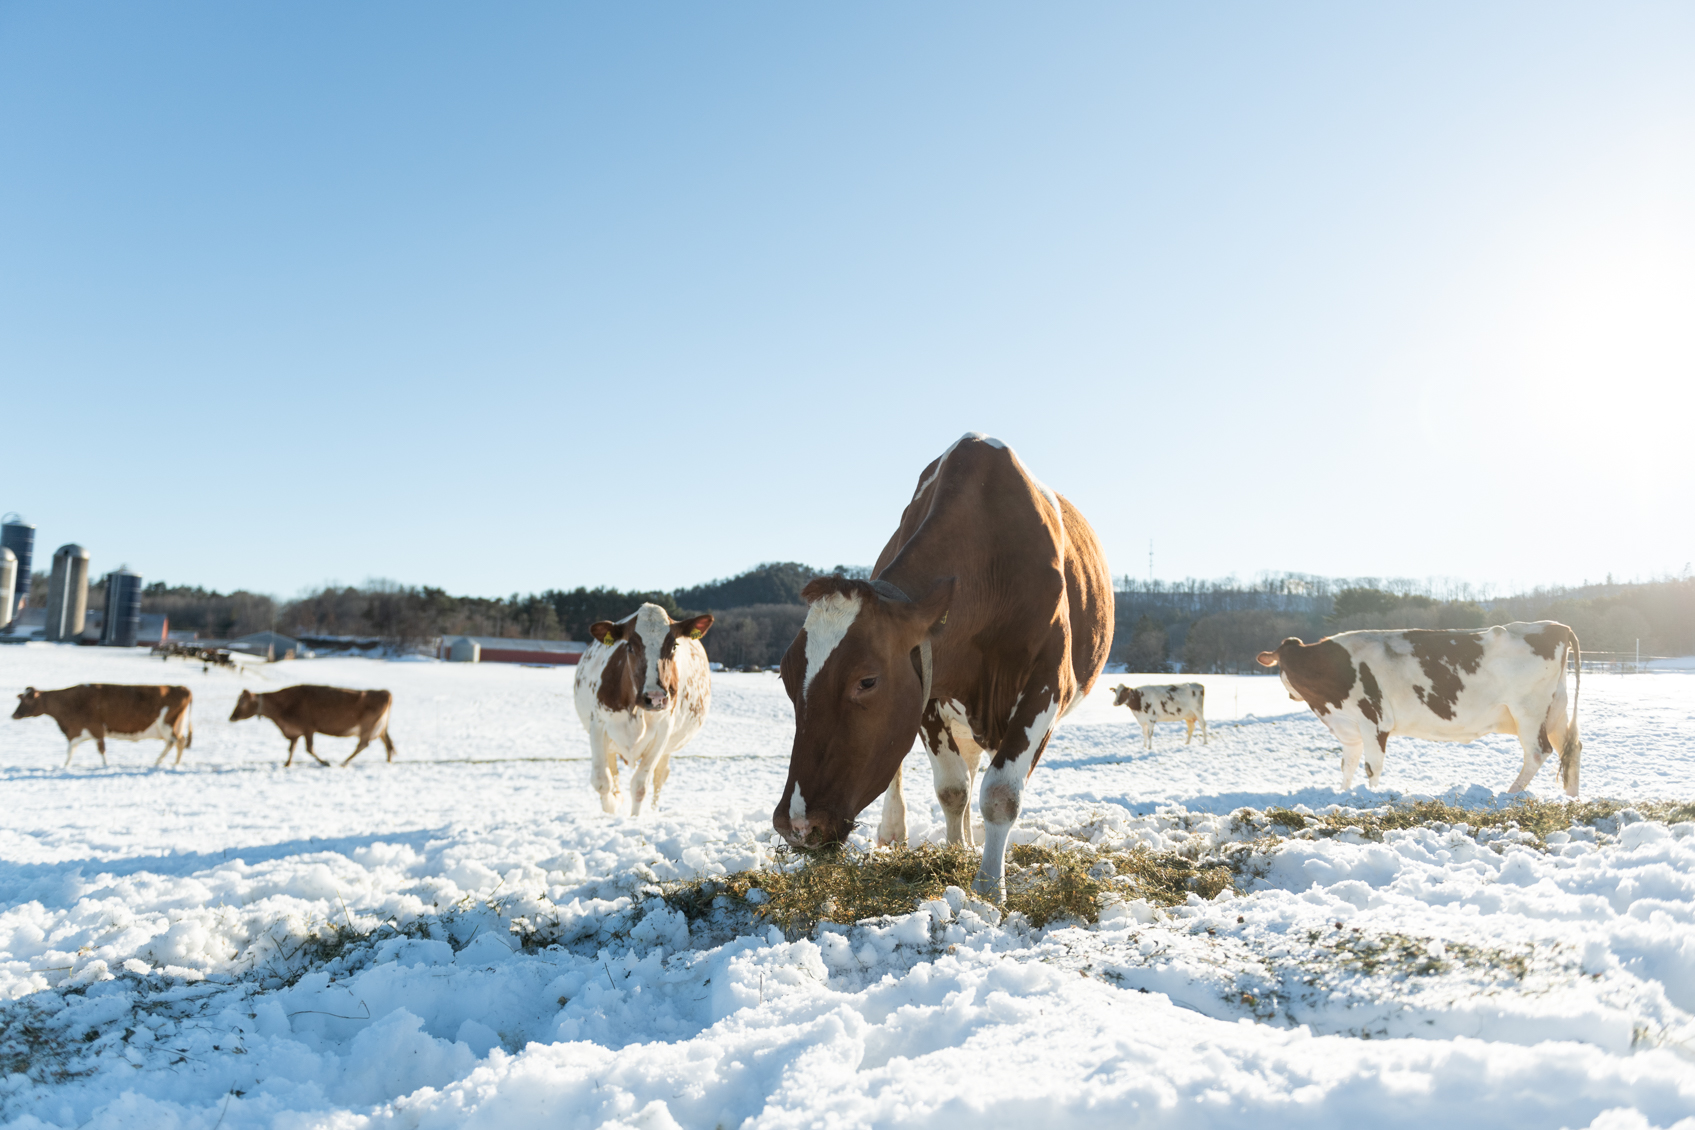 Cows eating forage grass outside on a snow covered pasture.